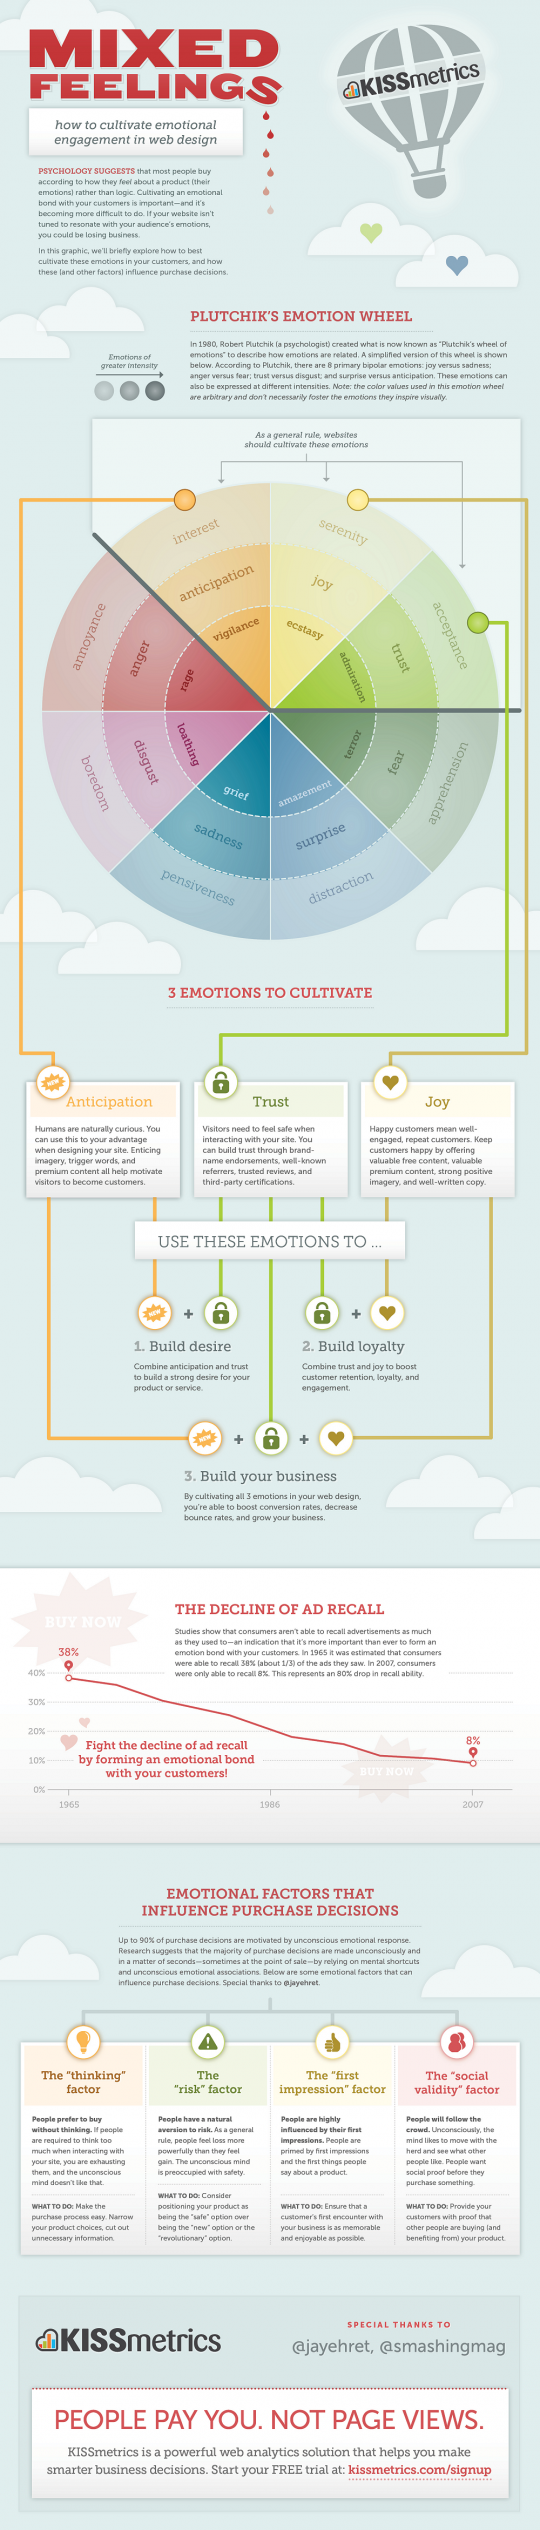 Mixed Feelings - Emotional Engagement In Web Design